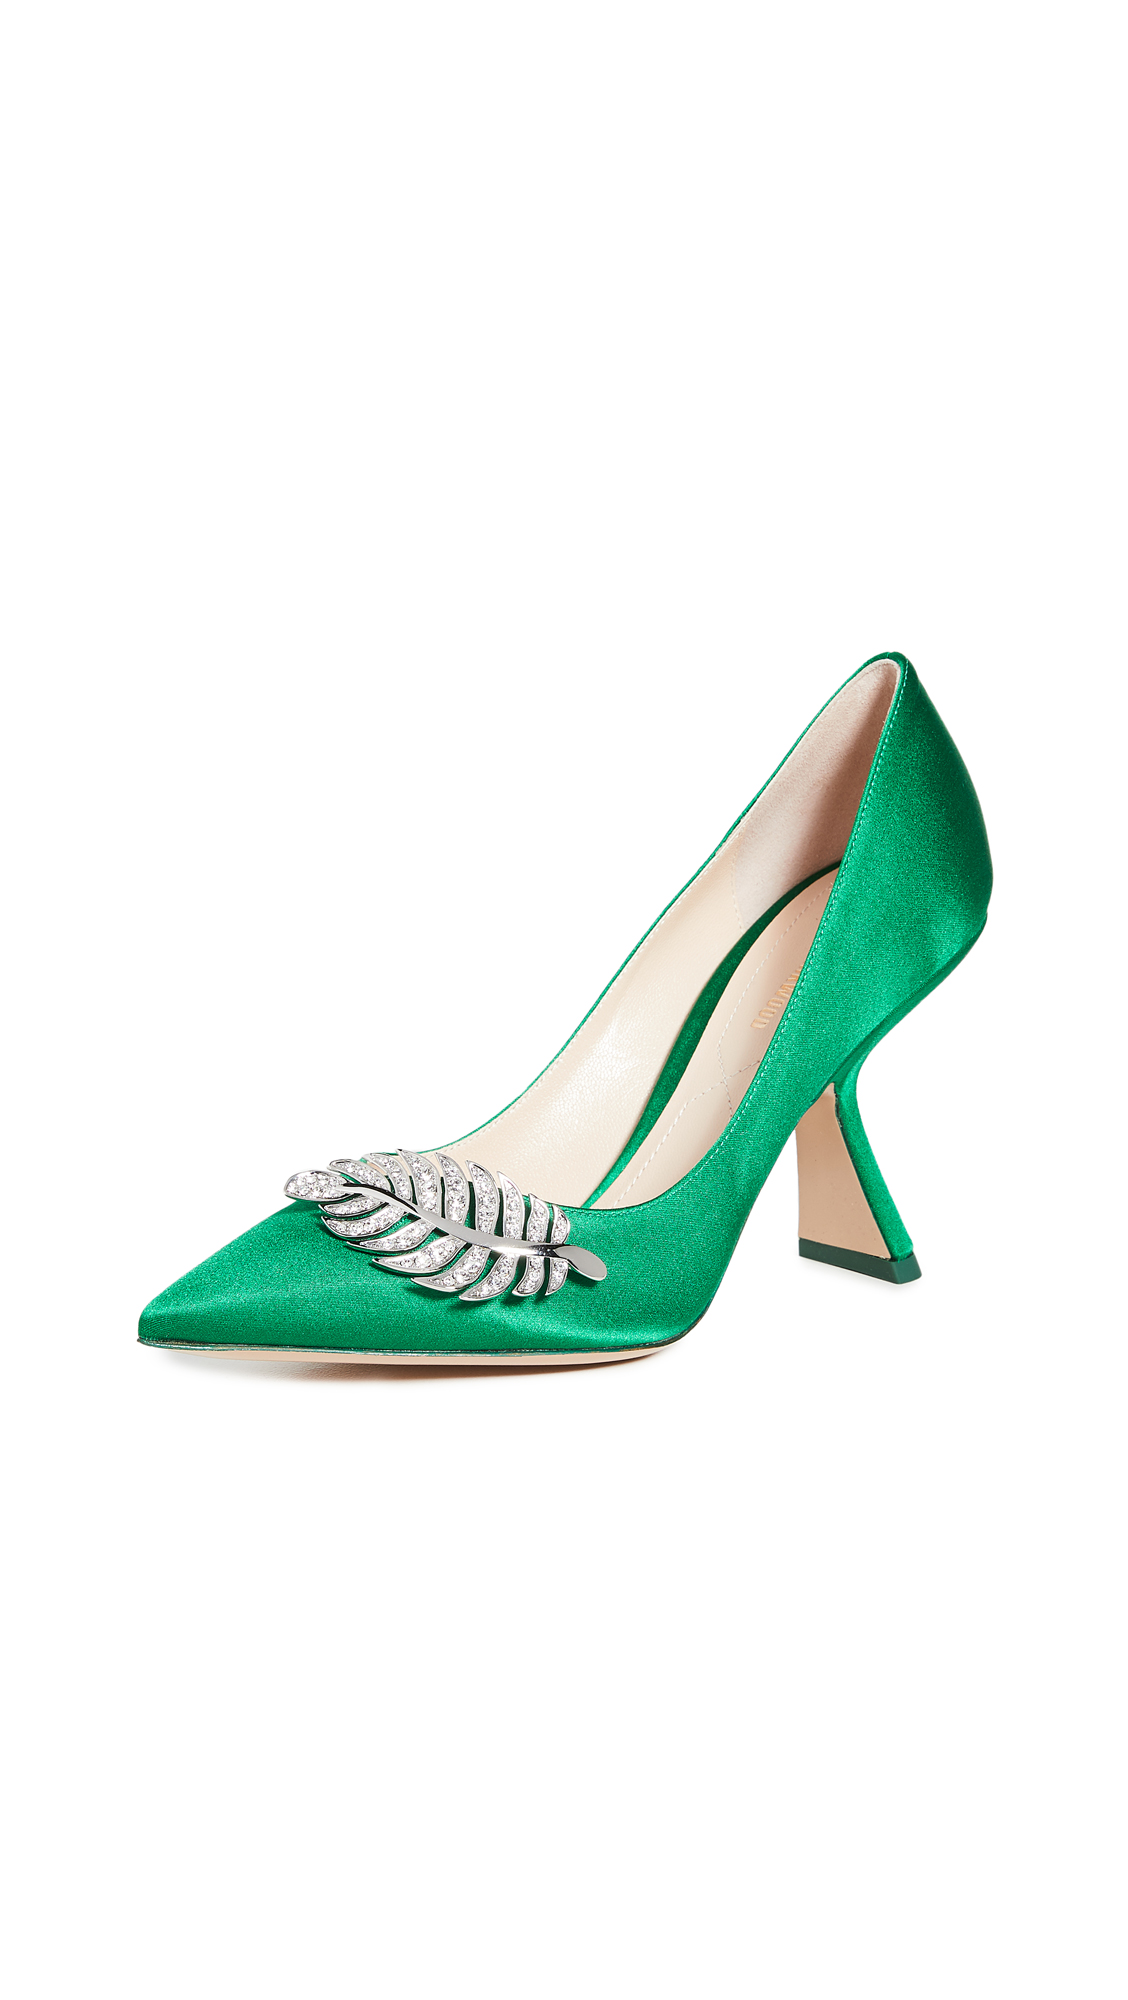 Nicholas Kirkwood Monstera Pumps - 60% Off Sale